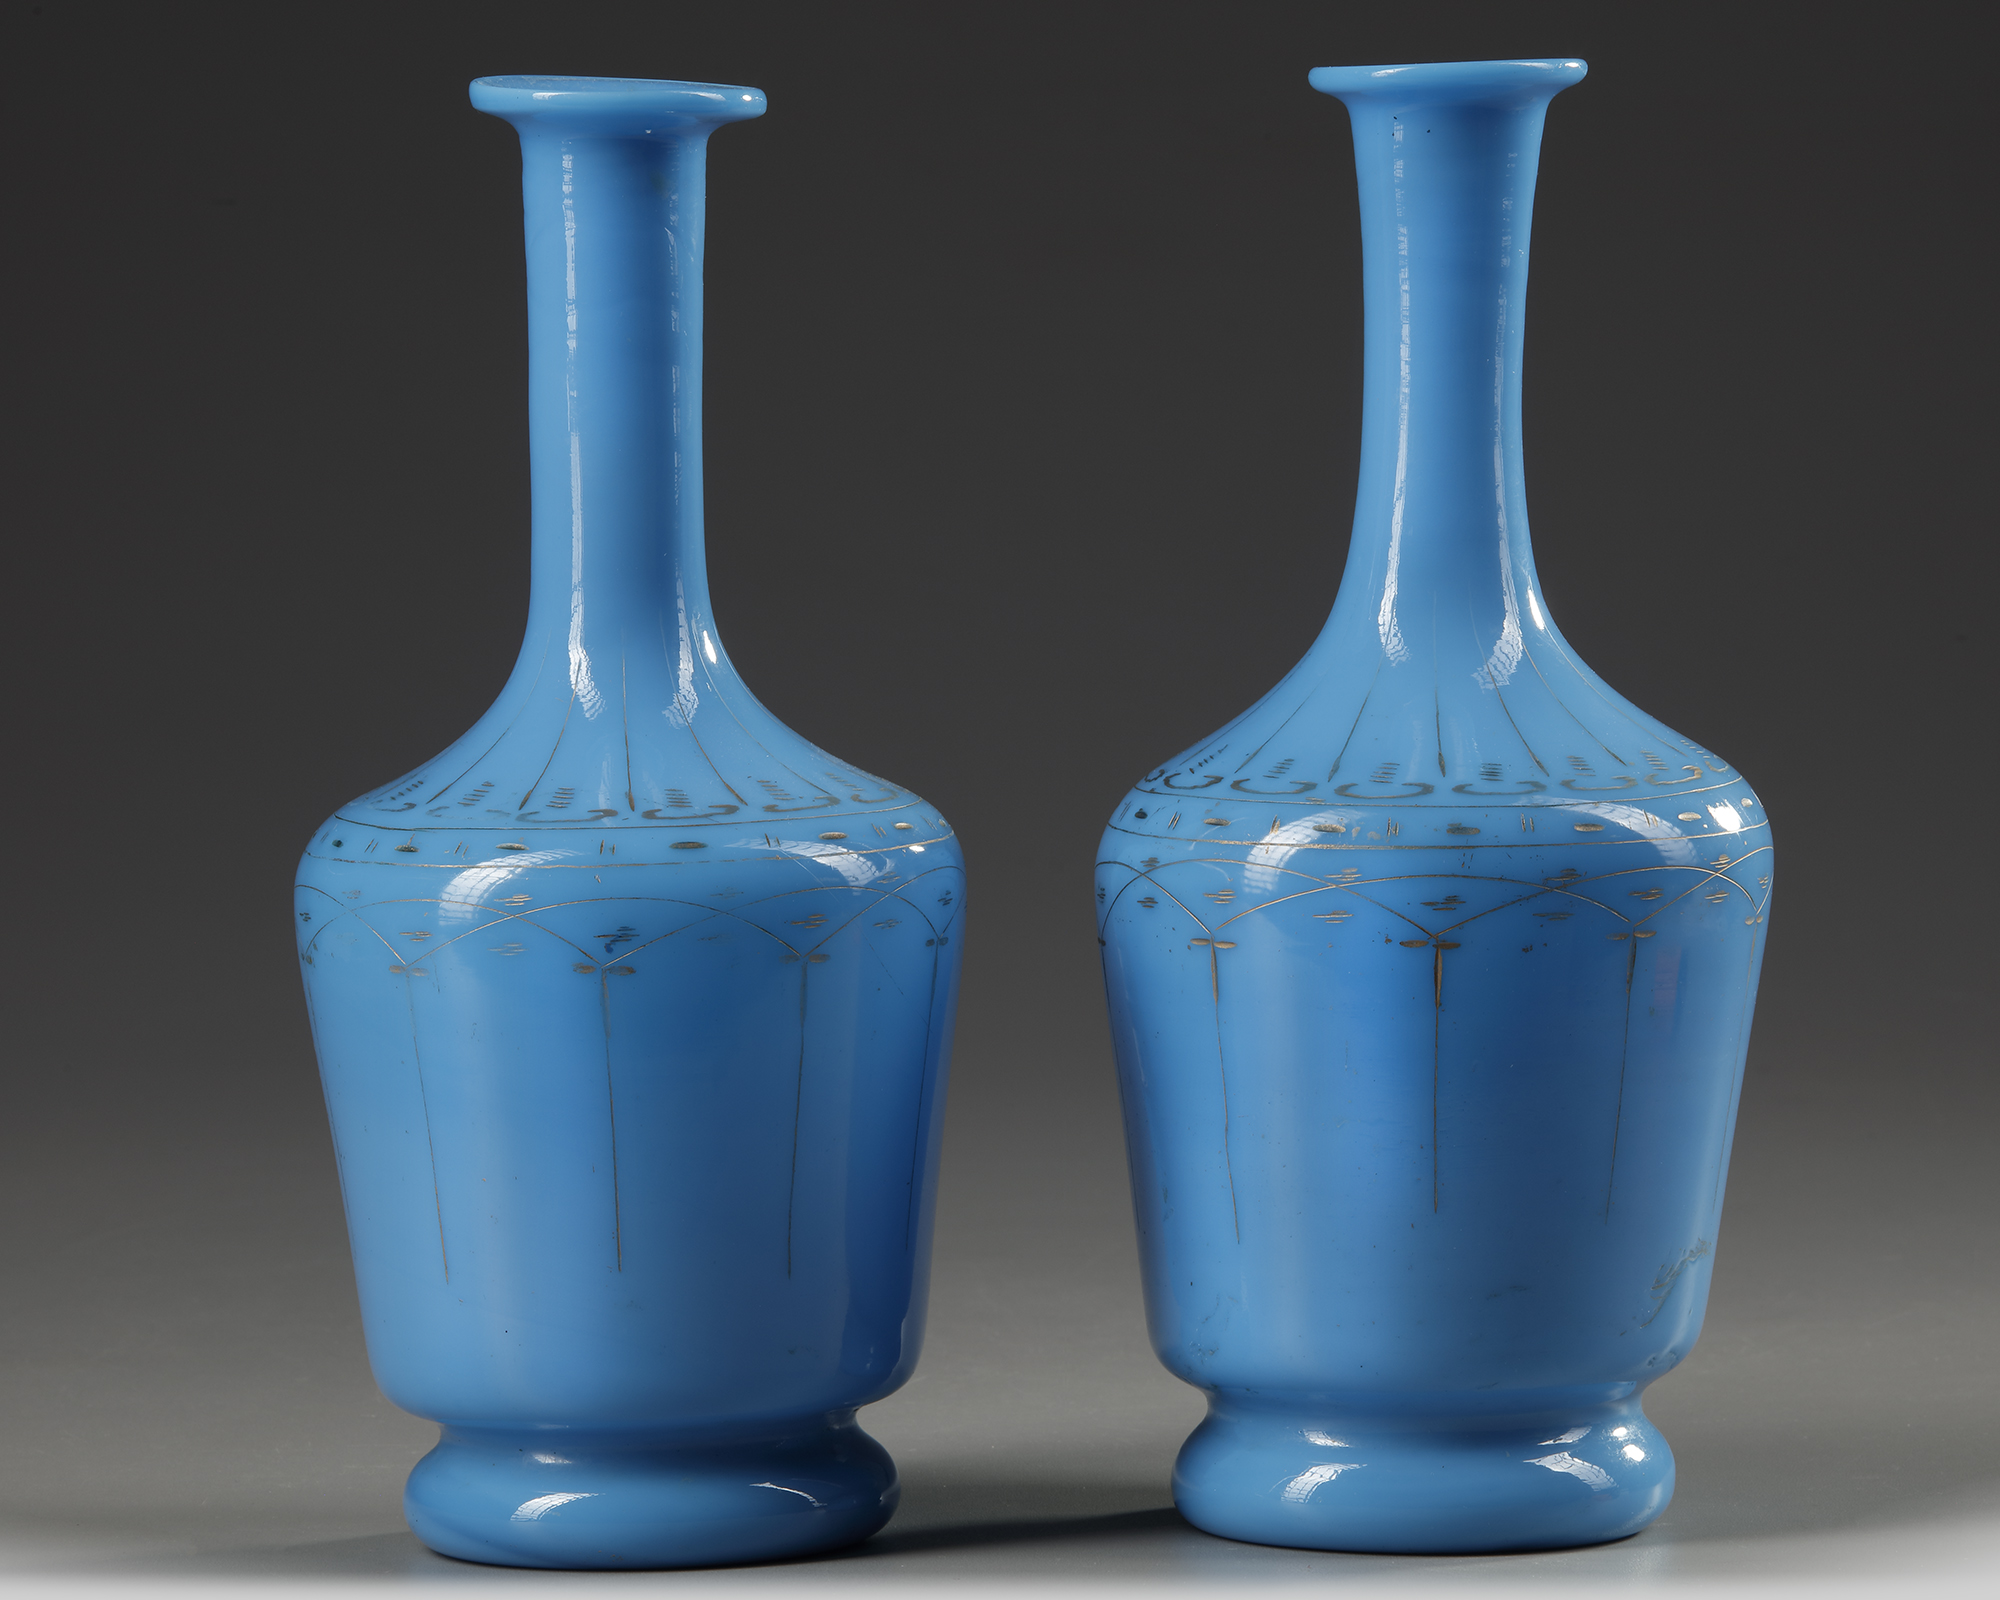 A PAIR OF OPALINE CARAFES, LATE 19TH CENTURY - Image 2 of 4